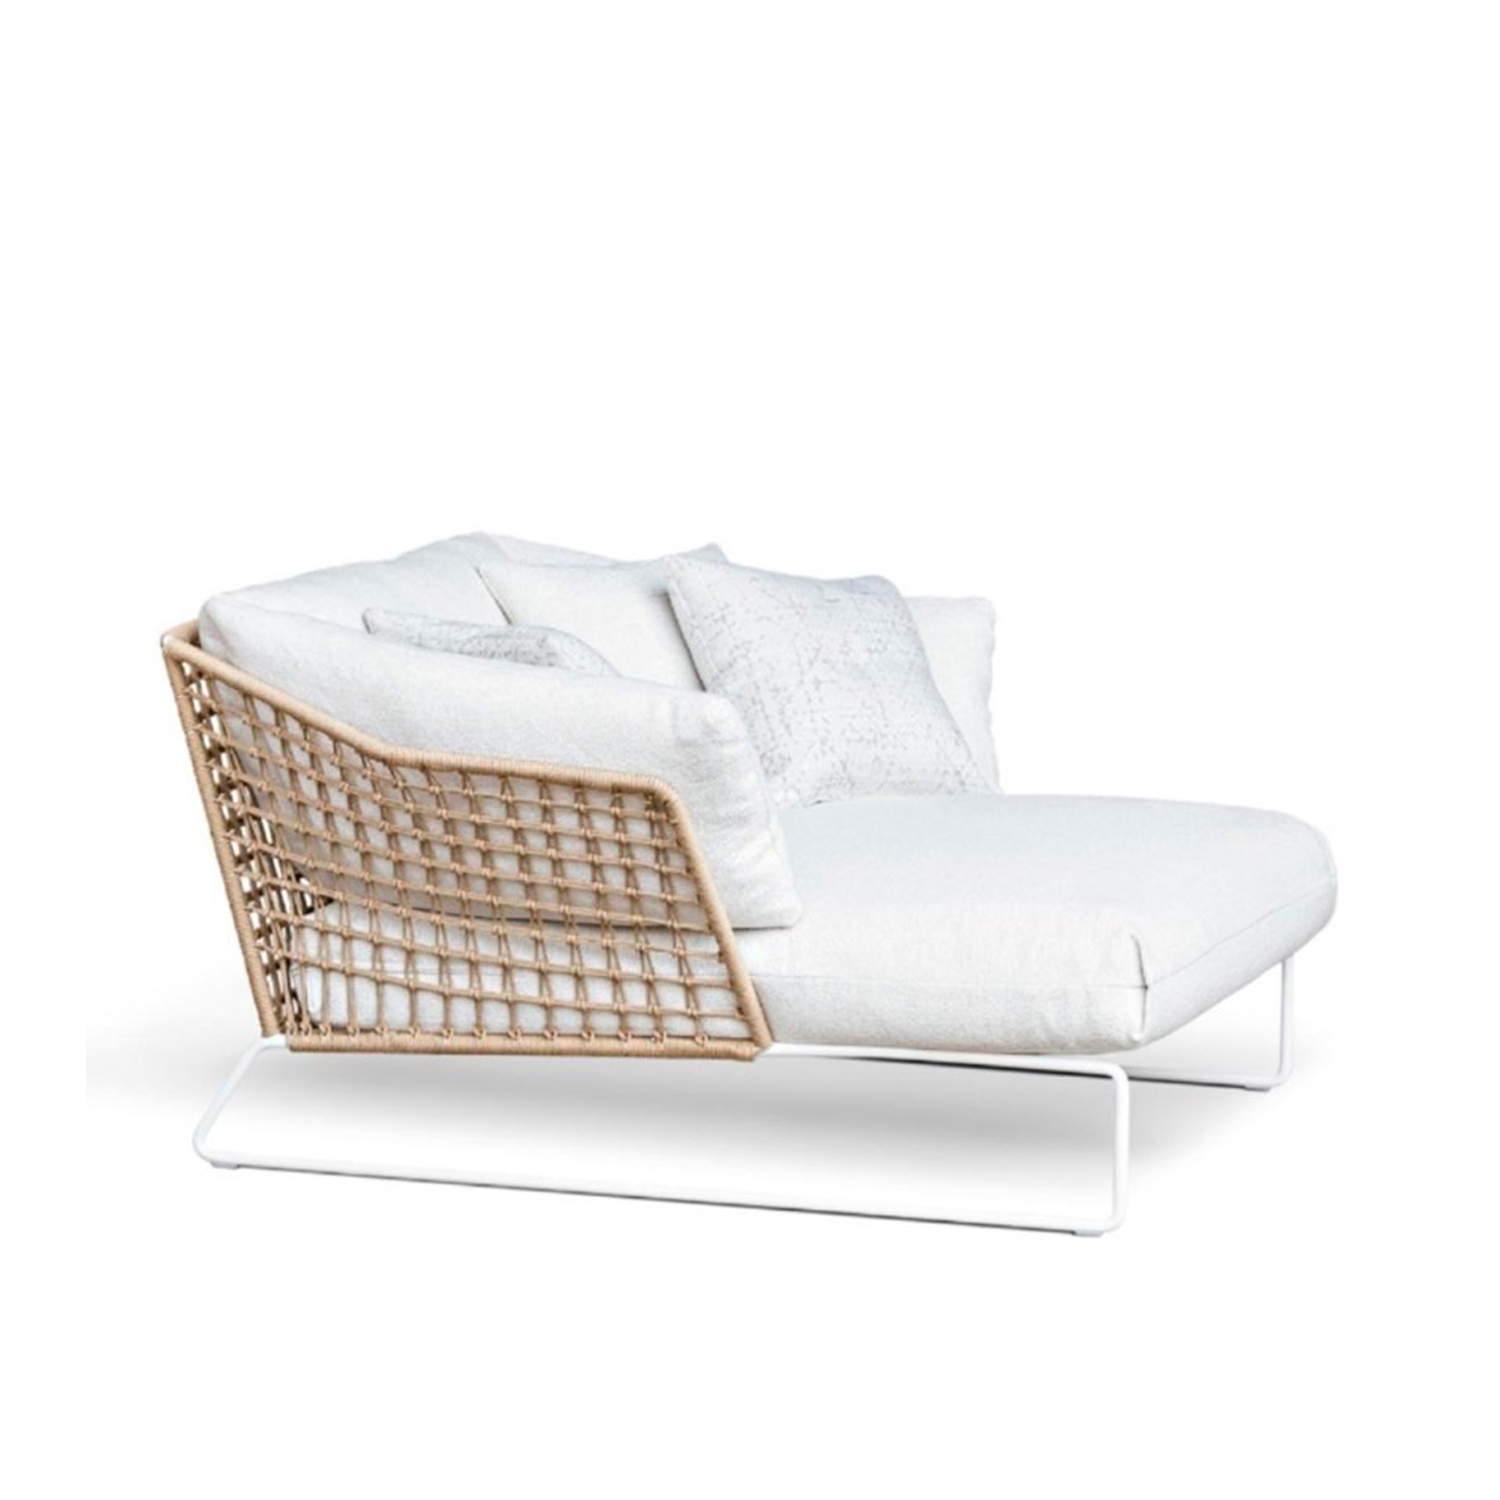 New York Soleil Garden bed - The New York Soleil outdoor collection adds a new element: the lounge armchair. The detailing of the ropes embraces a large comfortable seating area supported by the painted metal rod structure, available in white or anthracite grey.  The New York Soleil outdoor collection is a line of exclusive woven seating made entirely by hand. New York Soleil is the product of careful research into materials and the desire to maintain the unique original design. Woven nautical cords of different colours softly cover the painted metal rod structure. The ergonomic cushion is covered in a quick-drying, non-absorbent technical fabric, and its superior performance in the Martindale test guarantees abrasion resistance as well as hygienic breathability. In 2020 the collection adds a new element: the Lounge Armchair.  New York Soleil embodies outdoor living with a casual style and colourful charm. It is available in different blends and solid colours. The collection includes a sofa, a lounge armchair, an armchair, a pouf, a chair with or without armrests and a stool. Fully removable covers. Extra cushions are 40x40 cm and are available for purchase. Please enquire for more information and prices.   Materials Structure in 16 mm wire drawn for lounge armchair; in 12 mm wire drawn for sofa, armchair and pouf; in 11 mm wire drawn for chair with or without armrests and for stools. For all elements, structure is covered with plaiting of 4 mm diameter of polyester ropes. For sofa, armchair, chairs and stools, seat cushion is filled with a special 30 water-draining polyurethane, covered with polyester fiber 300gr/sqm on 100% polyester lining. Lounge armchair's seat cushion is made with flexible glass fiber slats inserted in the core of variable density polyurethane foam, covered with 600 gr/sqm polyester fiber and clothed with water-repellent heat-sealed fabric. Back and arm rests cushions are in polyester fiber in TNT fabric cover, clothed with water-repellent hea